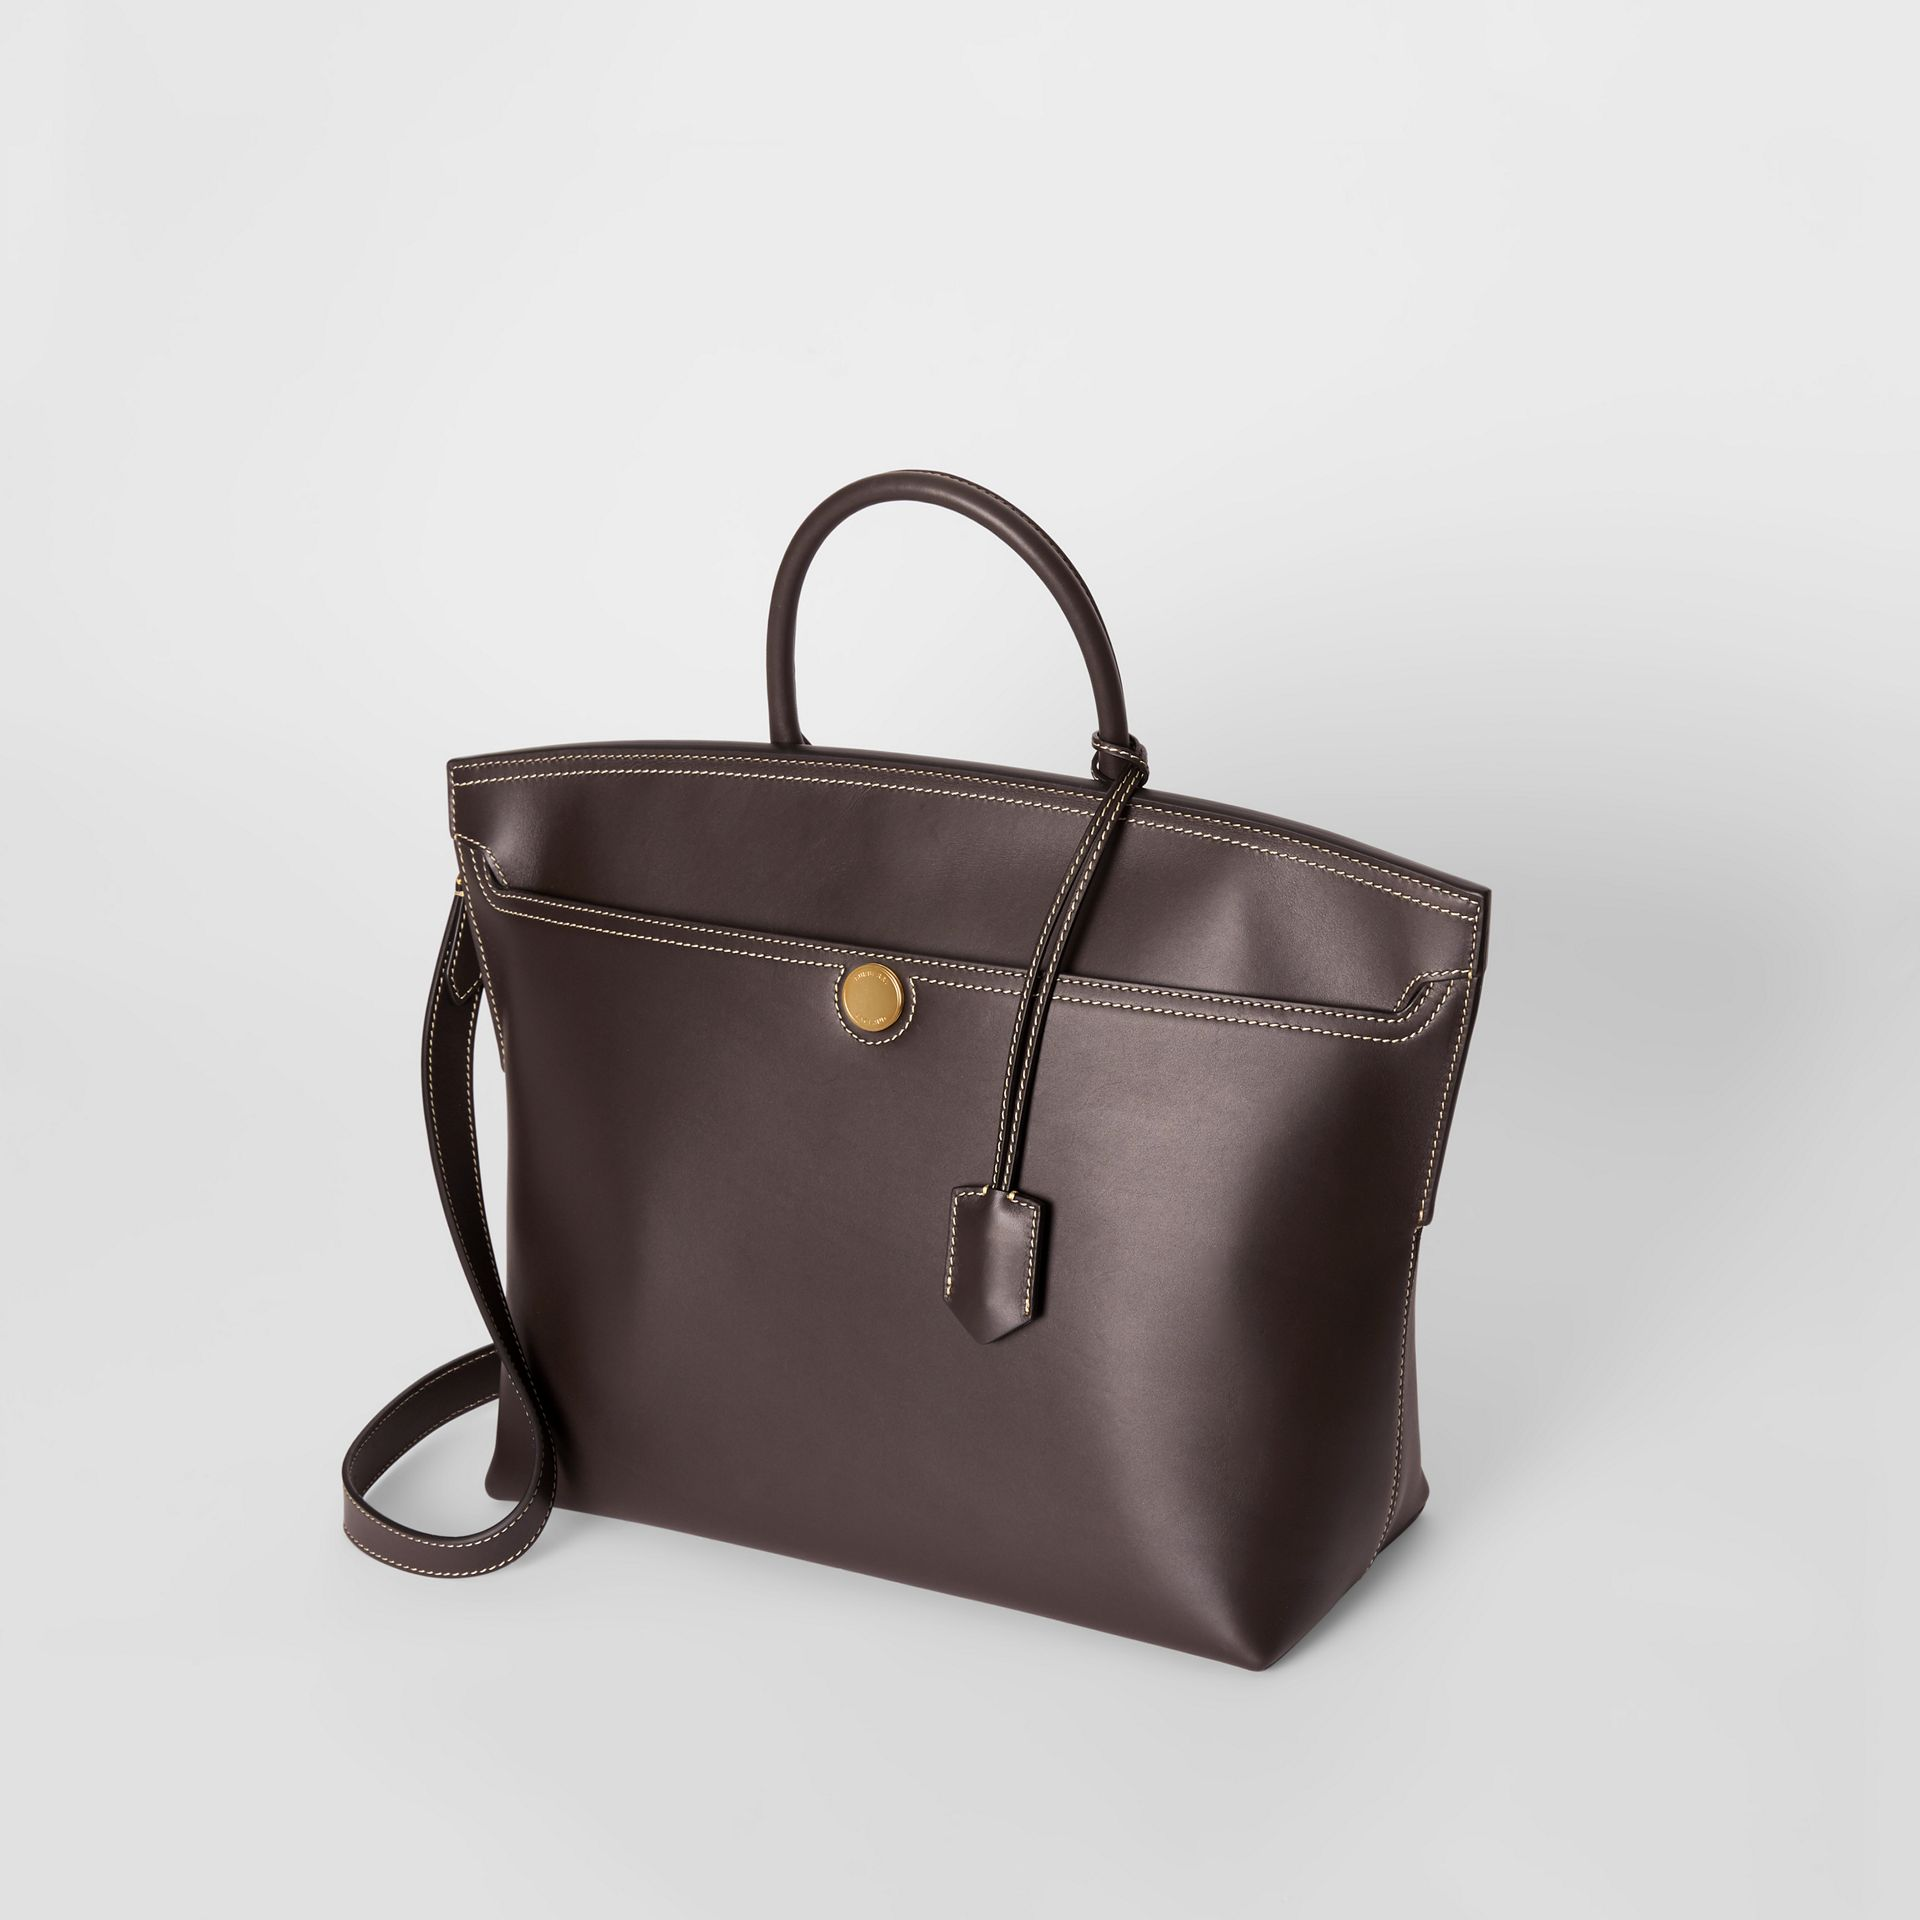 Leather Society Top Handle Bag in Coffee - Women | Burberry - gallery image 3